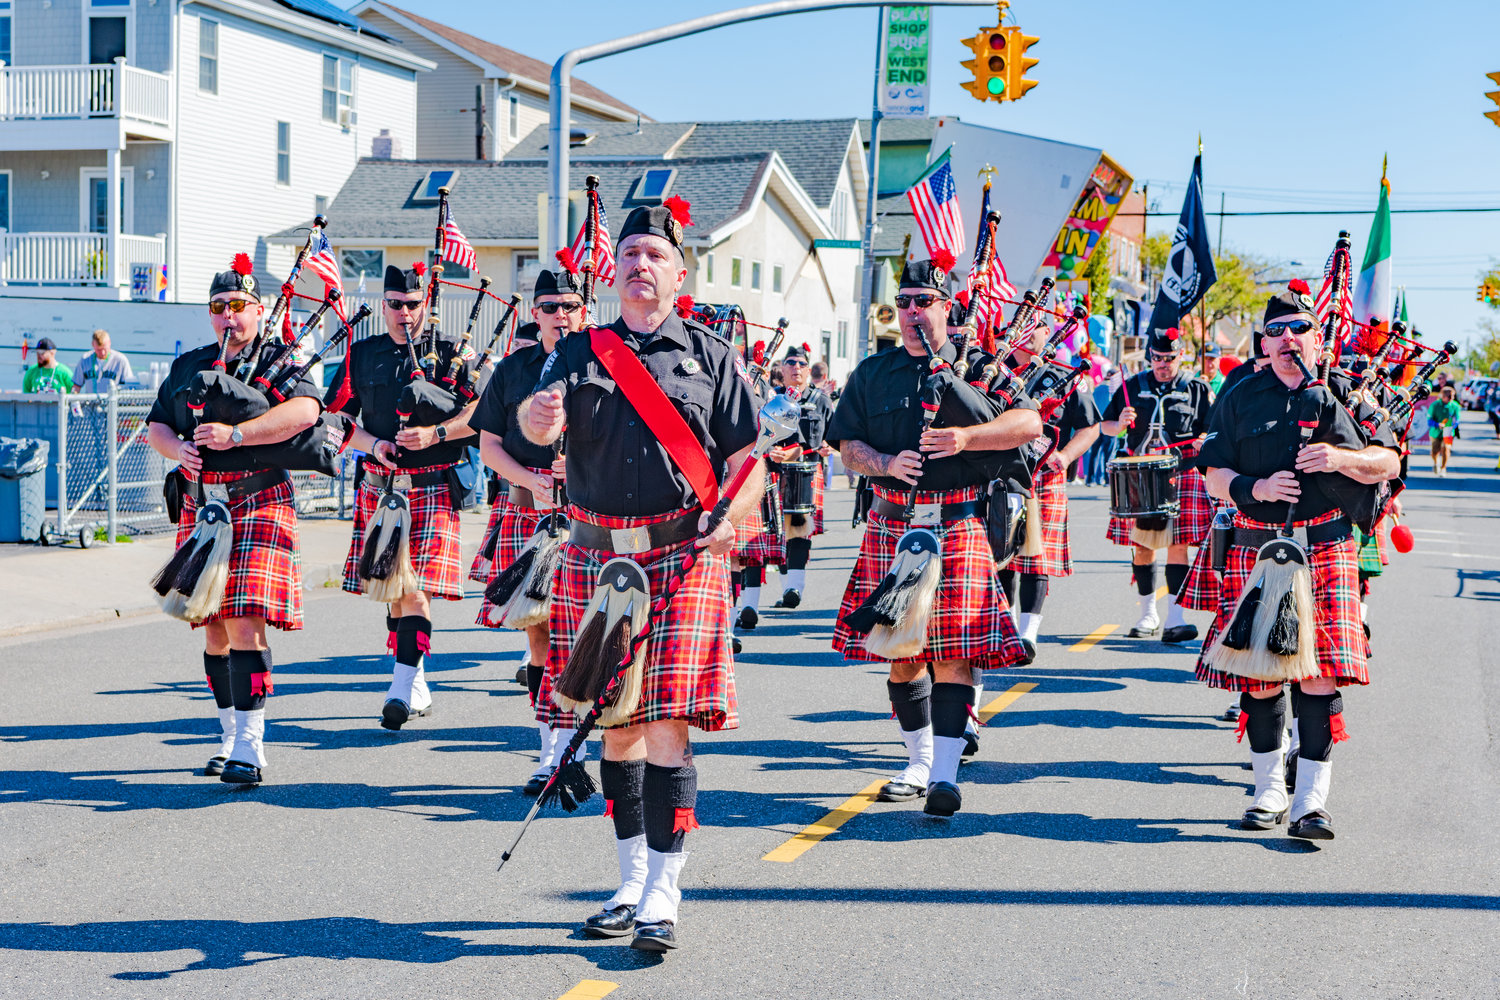 The Nassau County Fire Department Pipes and Drums were among the many organizations that marched in the parade.